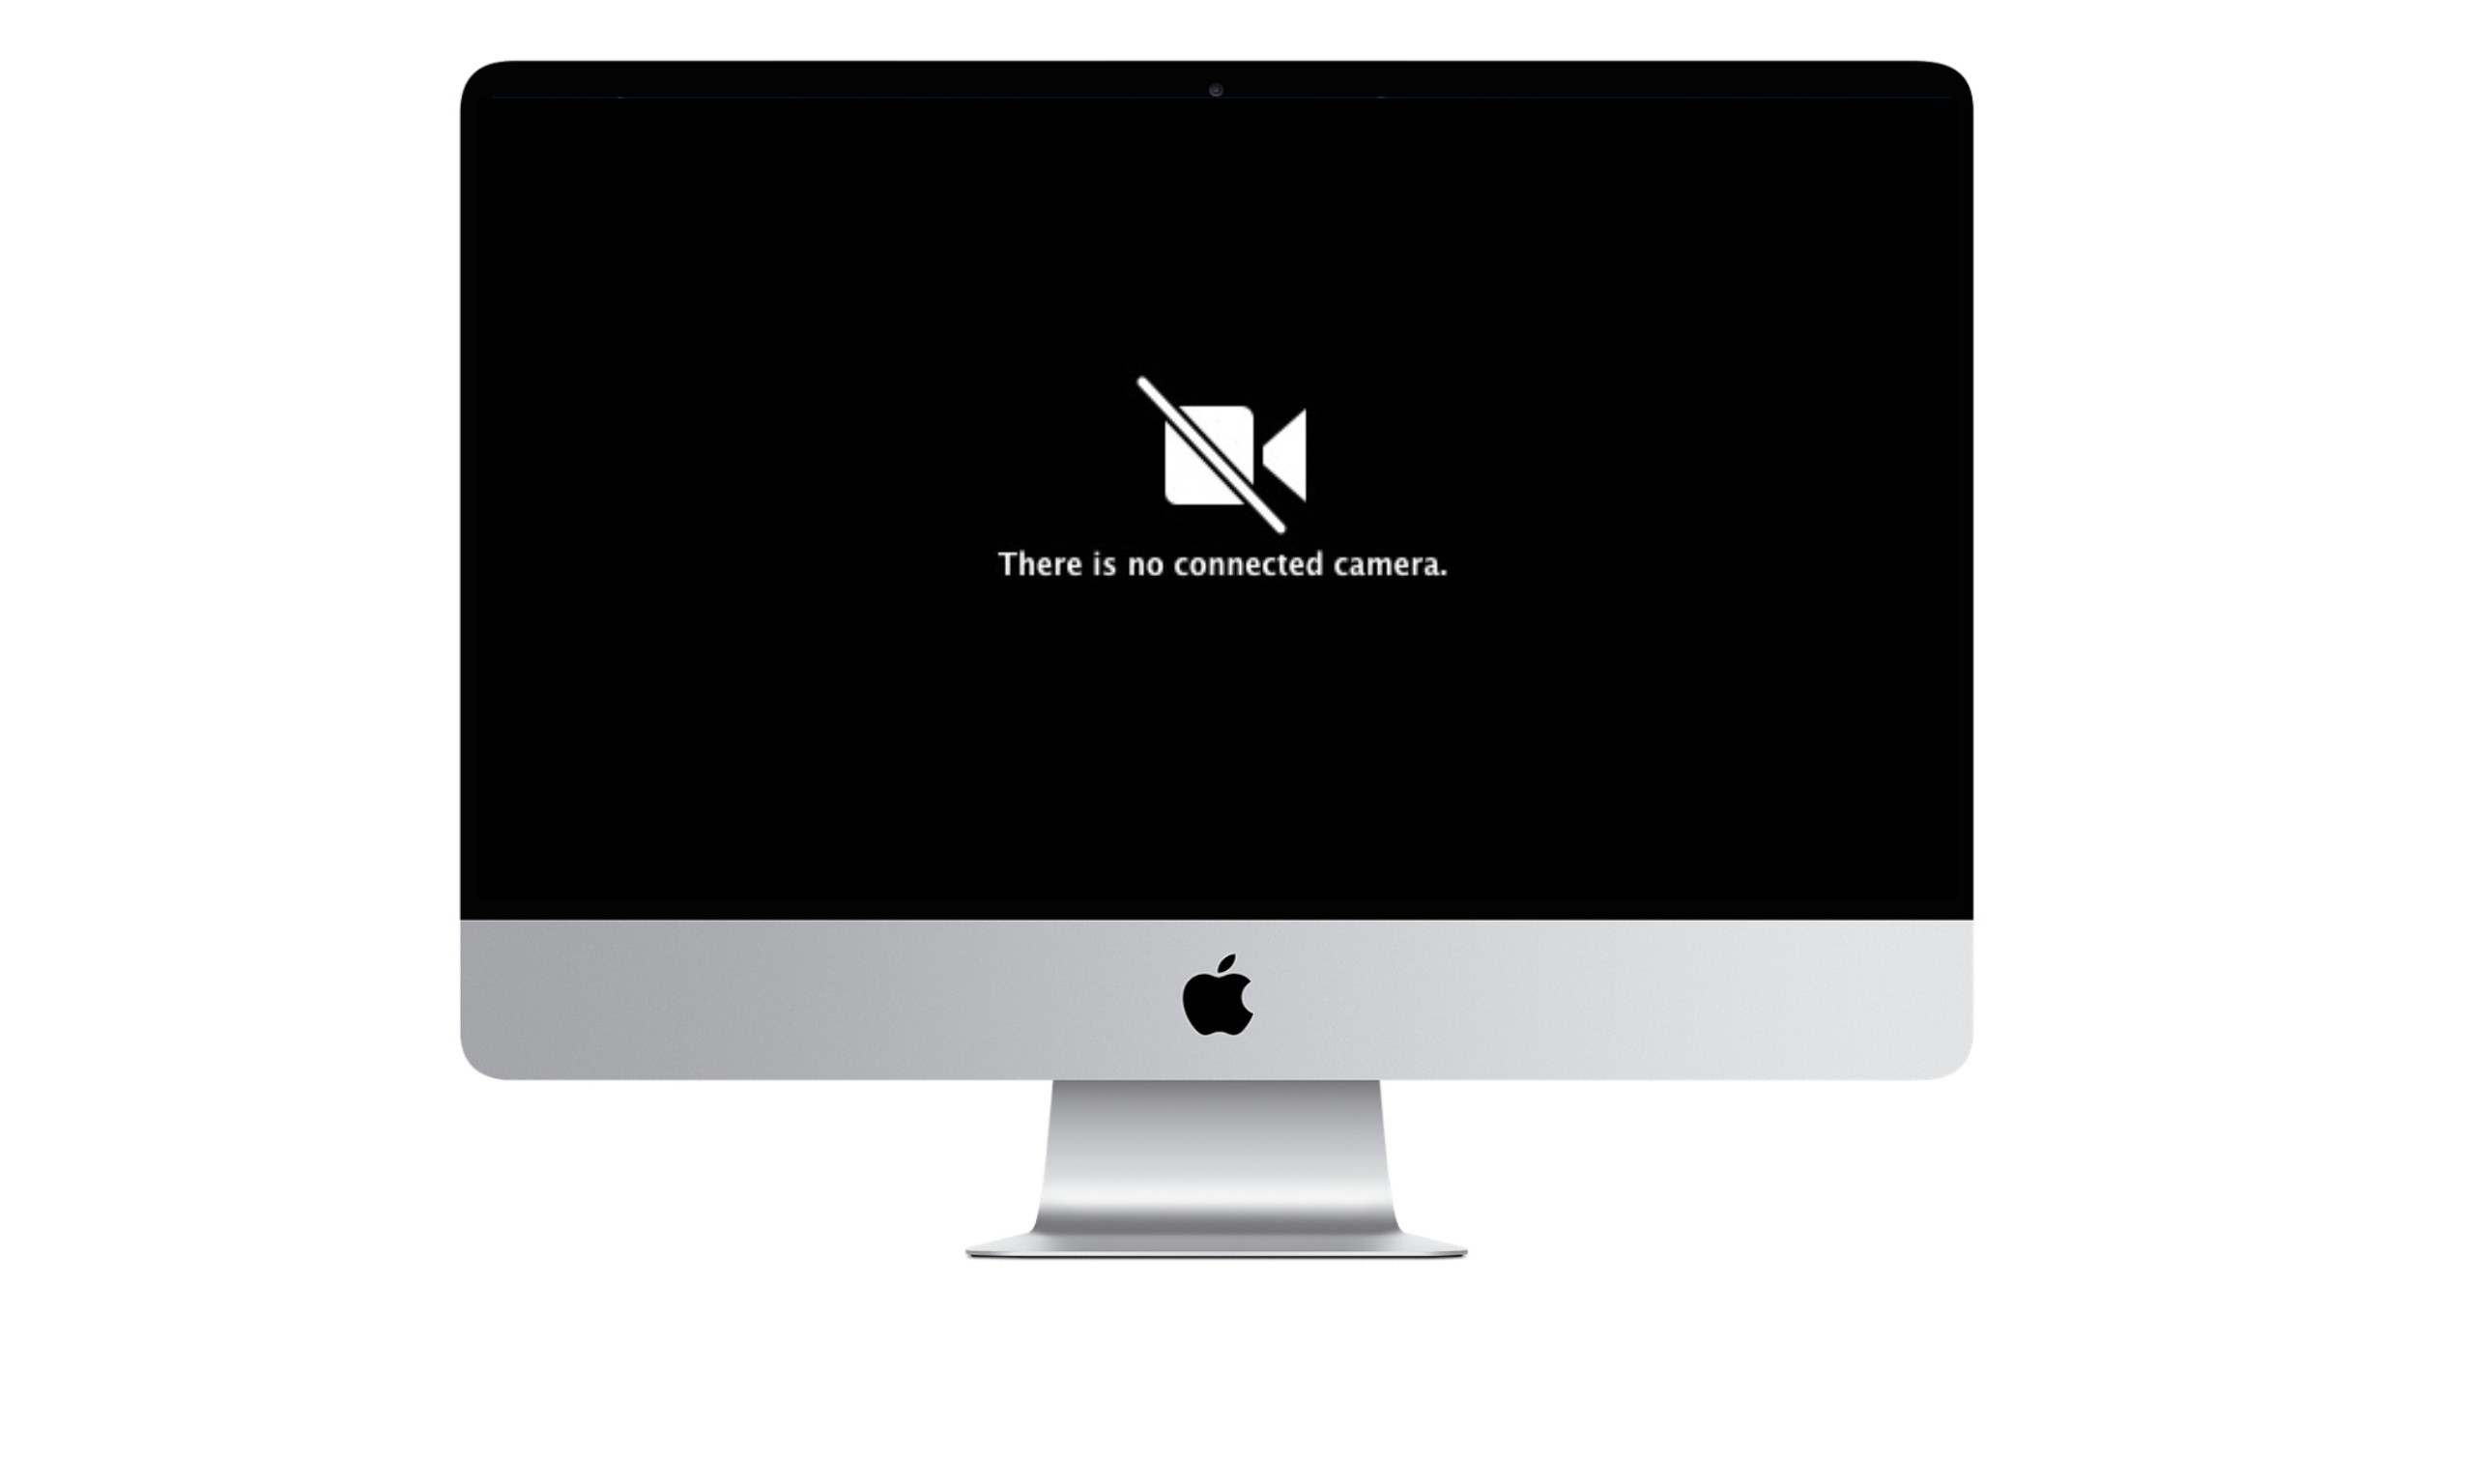 iMac Facetime and Camera Not Working Fixing Dallas